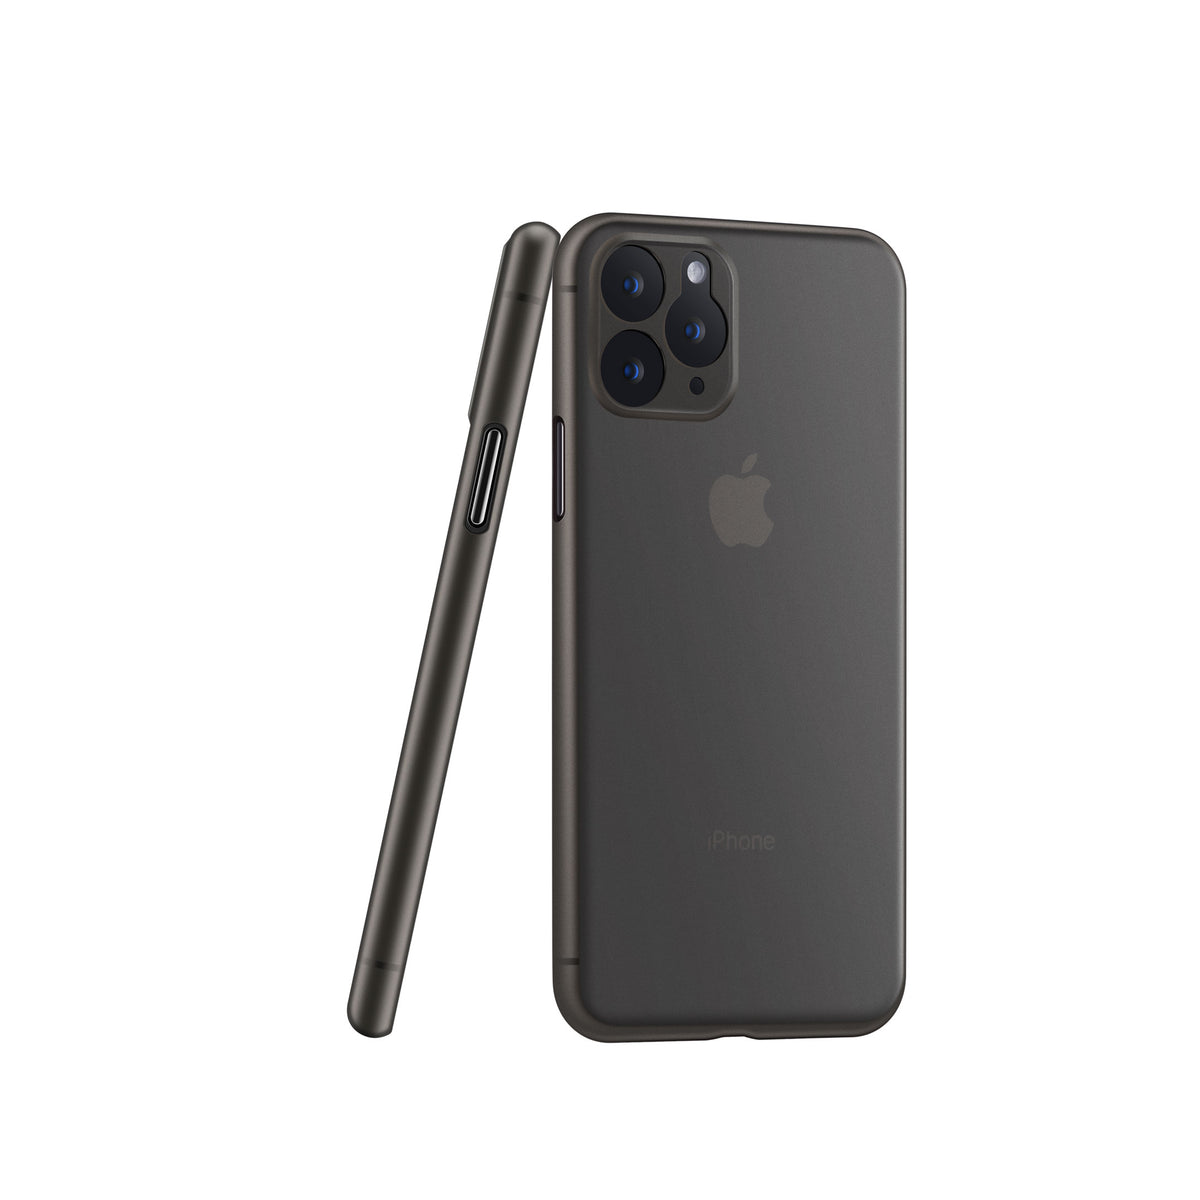 Go Original iPhone 11 Pro Max Slim Case